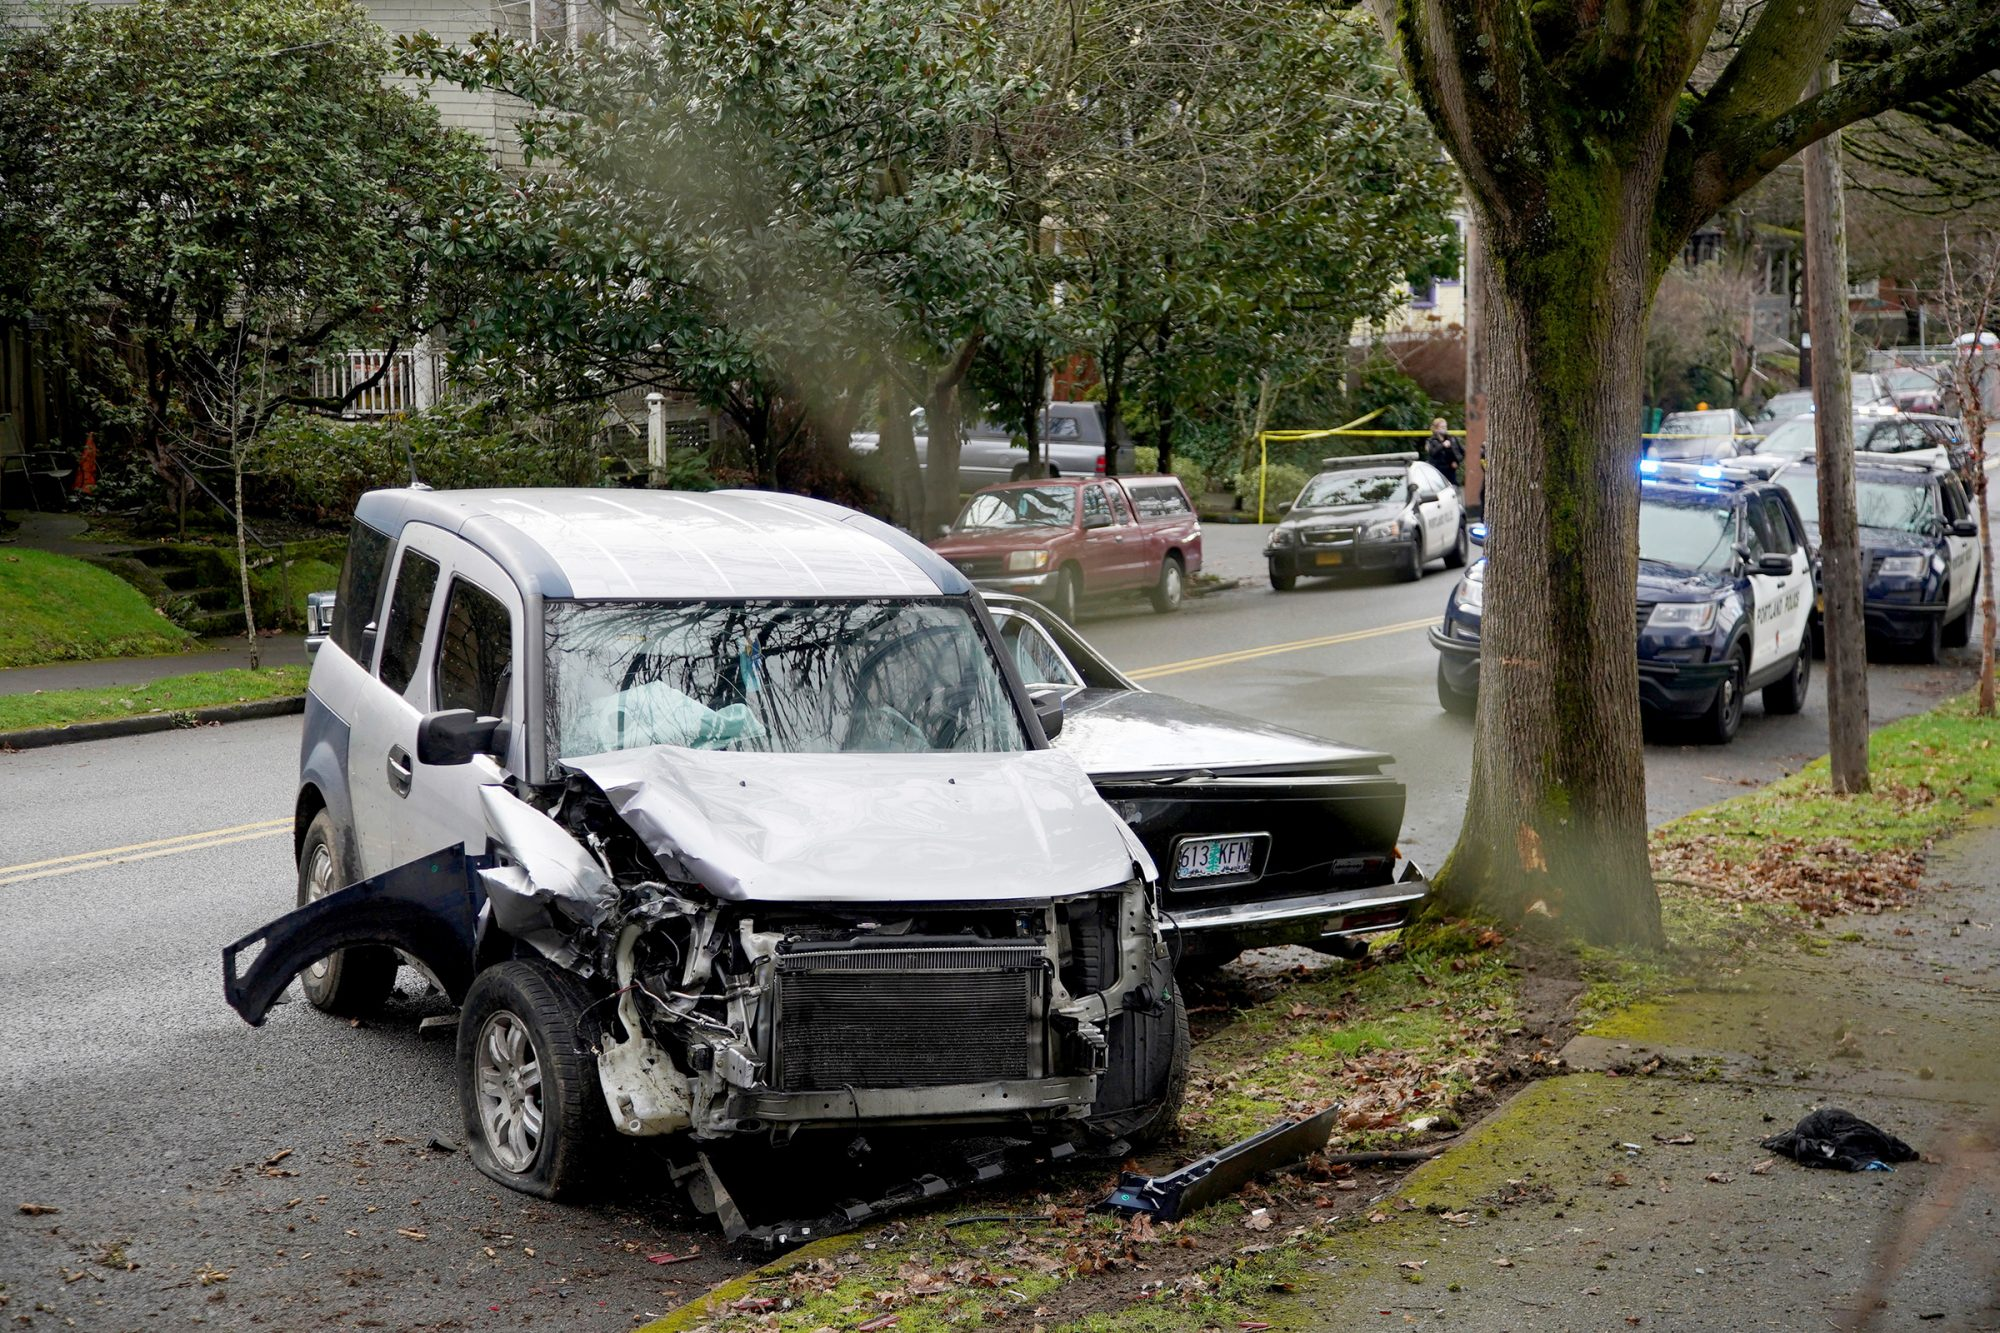 A wrecked vehicle is seen after a driver struck and injured at least five people over a 20-block stretch of Southeast Portland, Ore.